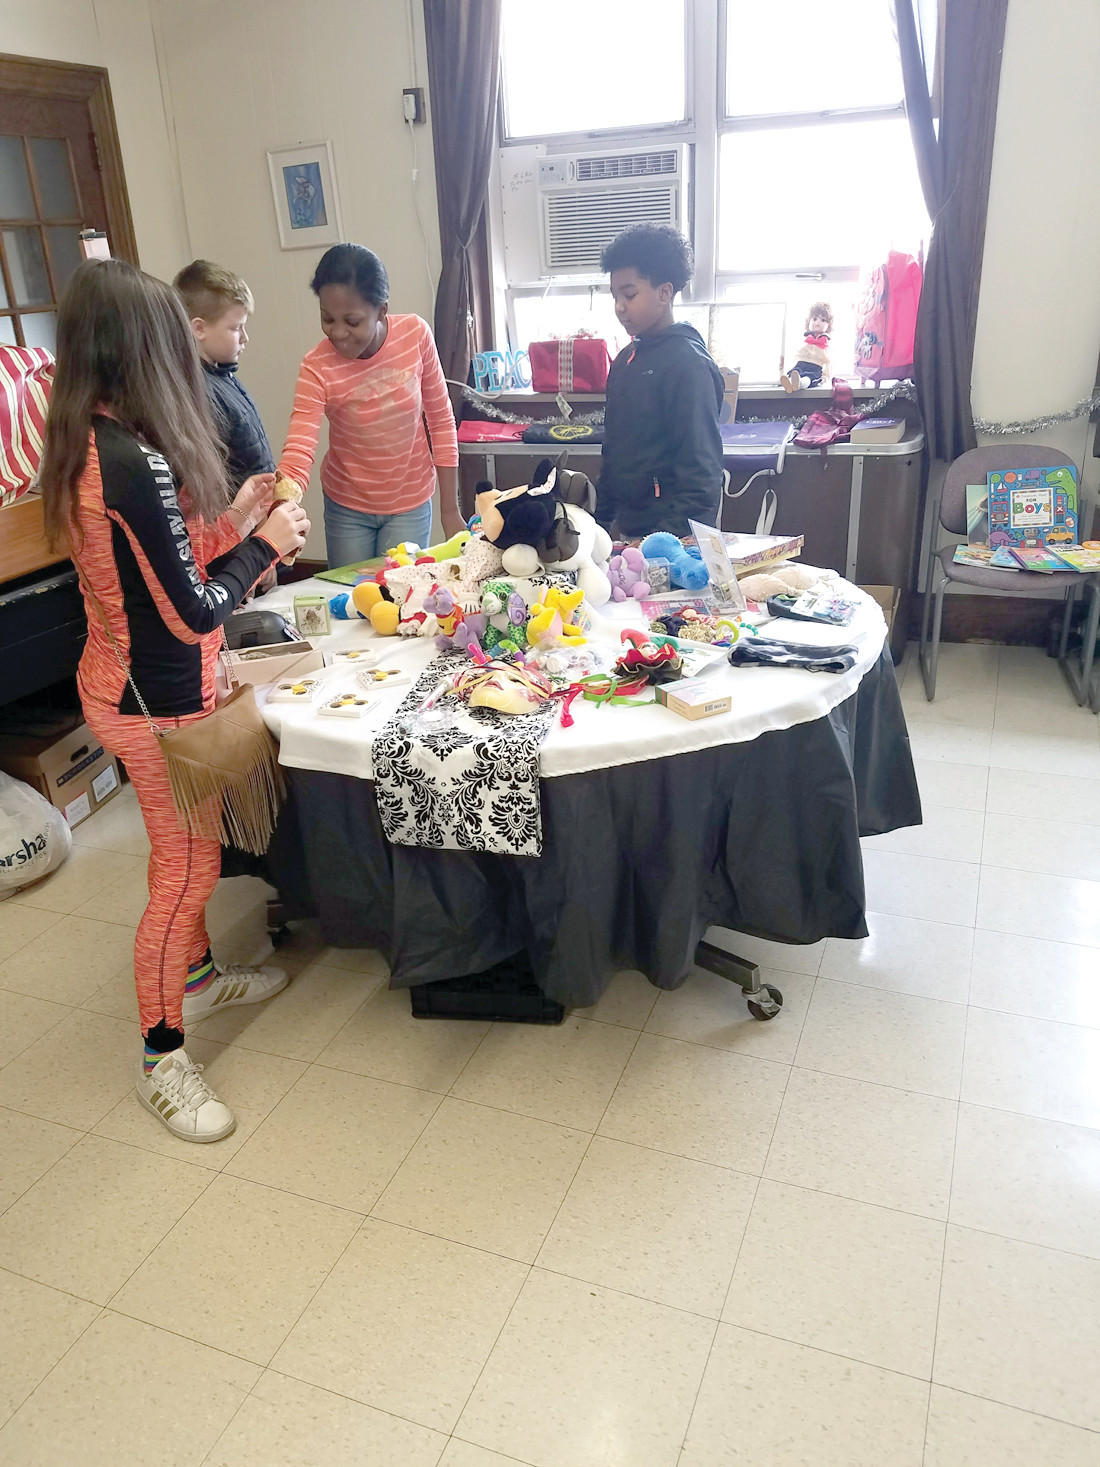 A DELIGHTFUL SHOPPING EXPERIENCE: The shopping took place in the school faculty room, with tablecloths, table runners and soft music playing in the background, giving students a truly enjoyable shopping experience.